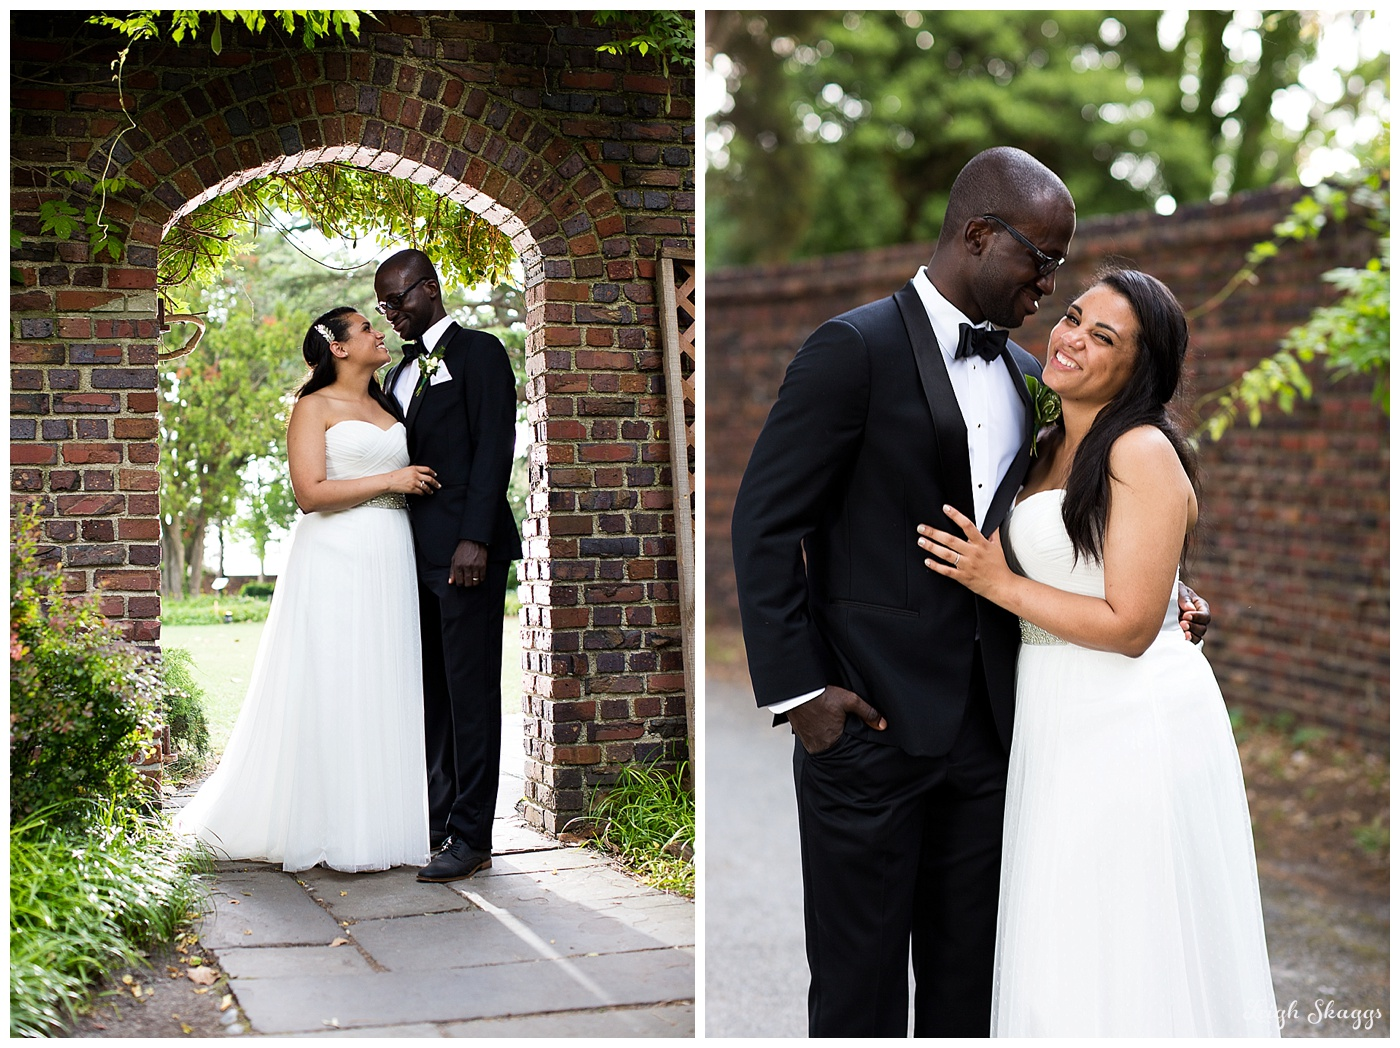 Alena & Luke are Married!!  A sneak peek from their Hermitage Museum & Garden Wedding!